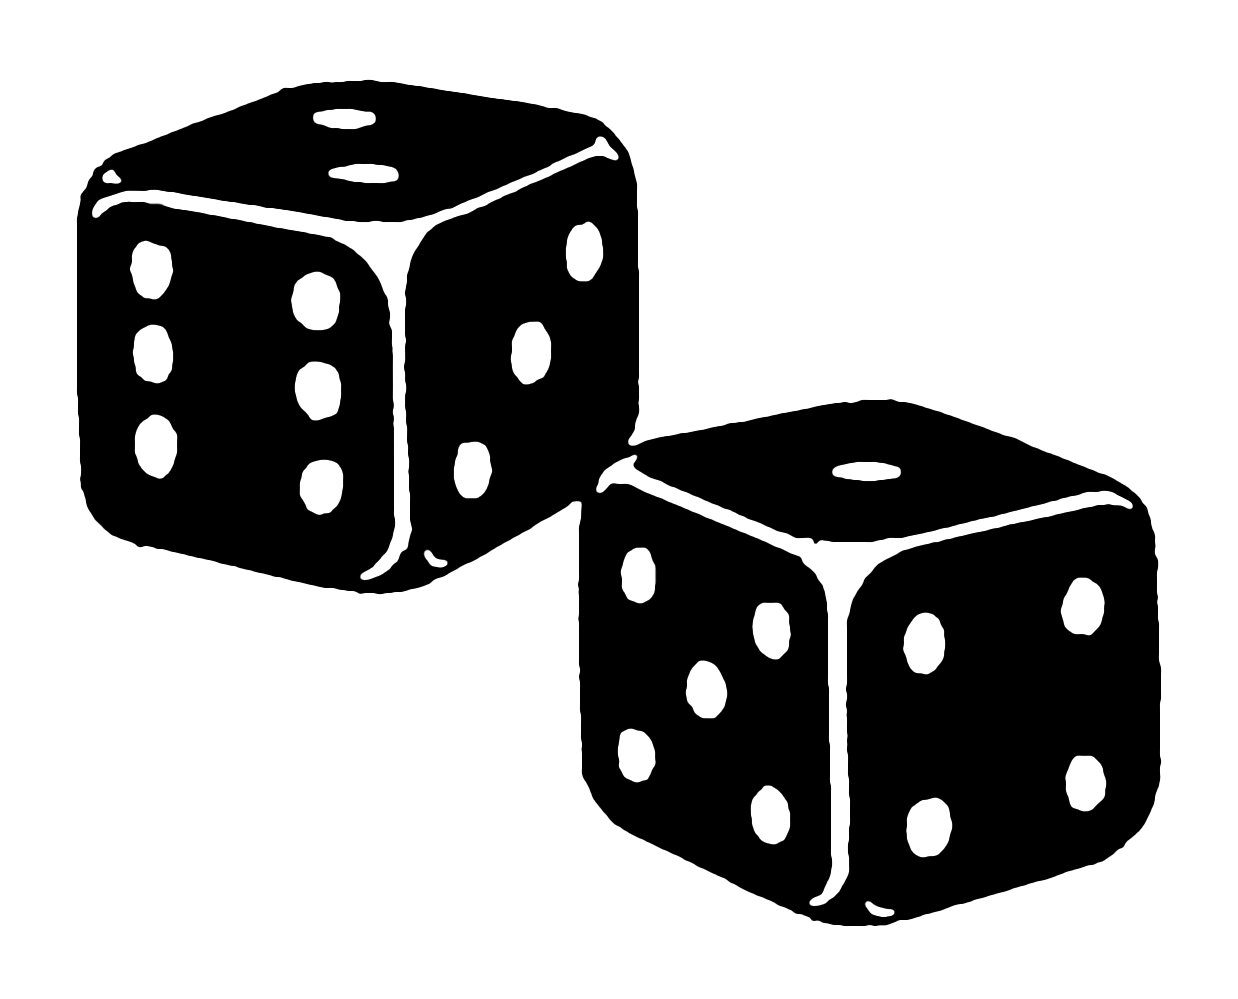 File:Dice (PSF).png - Wikimedia Commons - Dice HD PNG